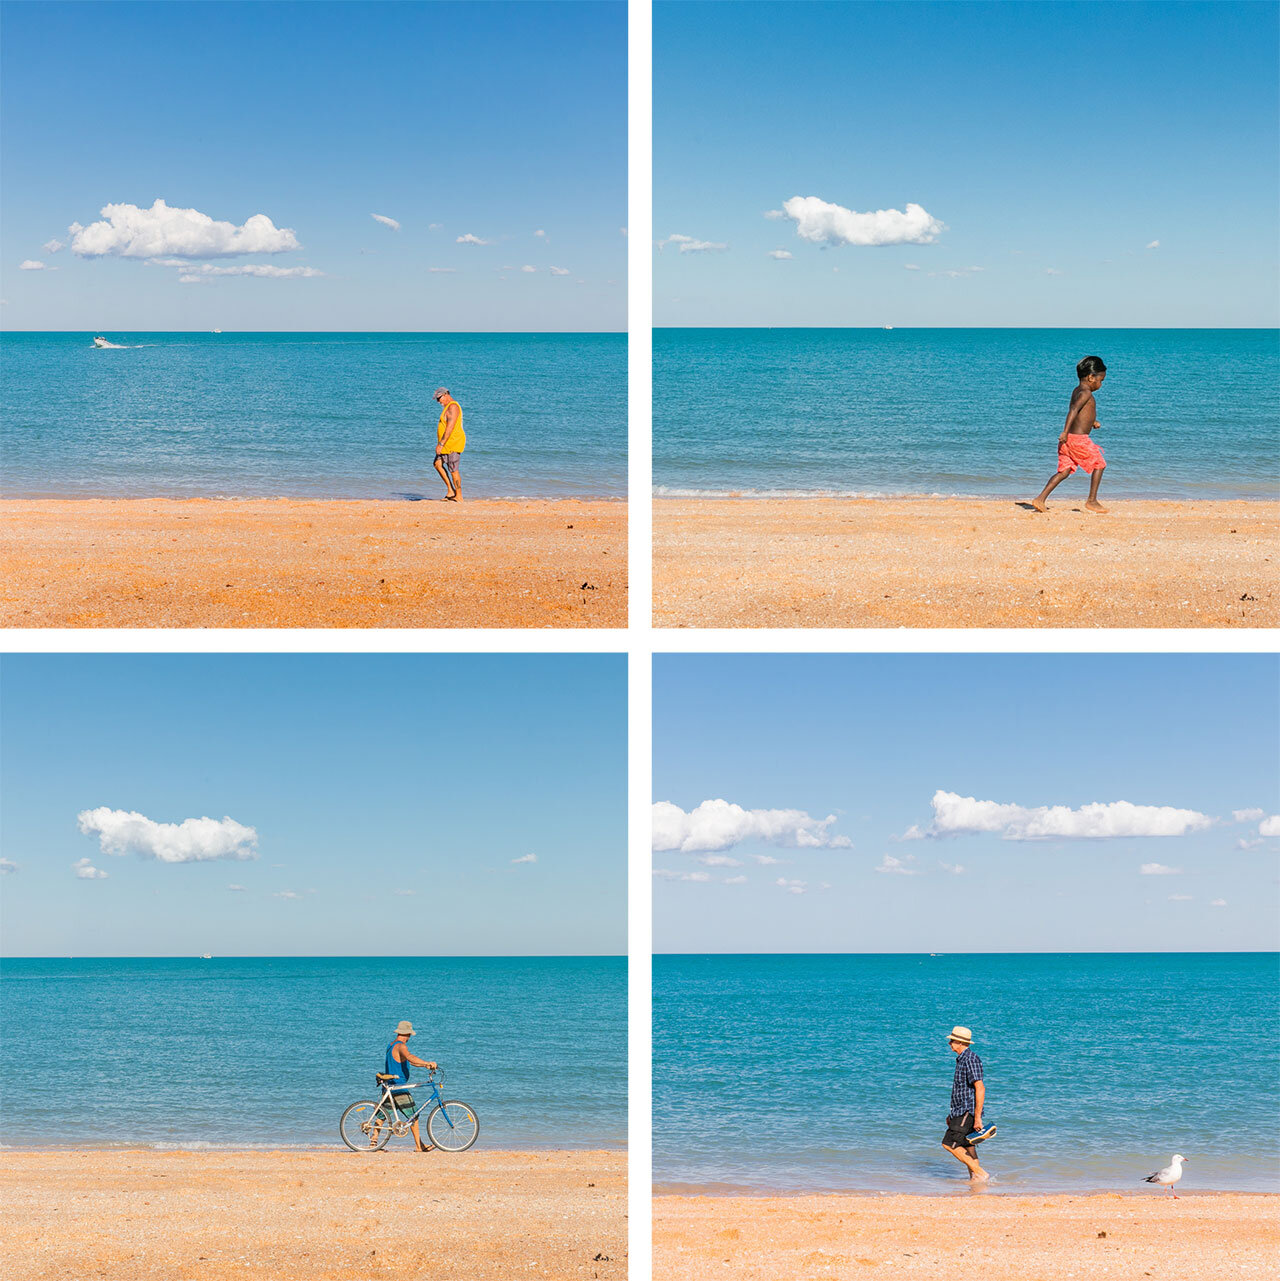 Watching the world go by at Town Beach in Broome, Western Australia